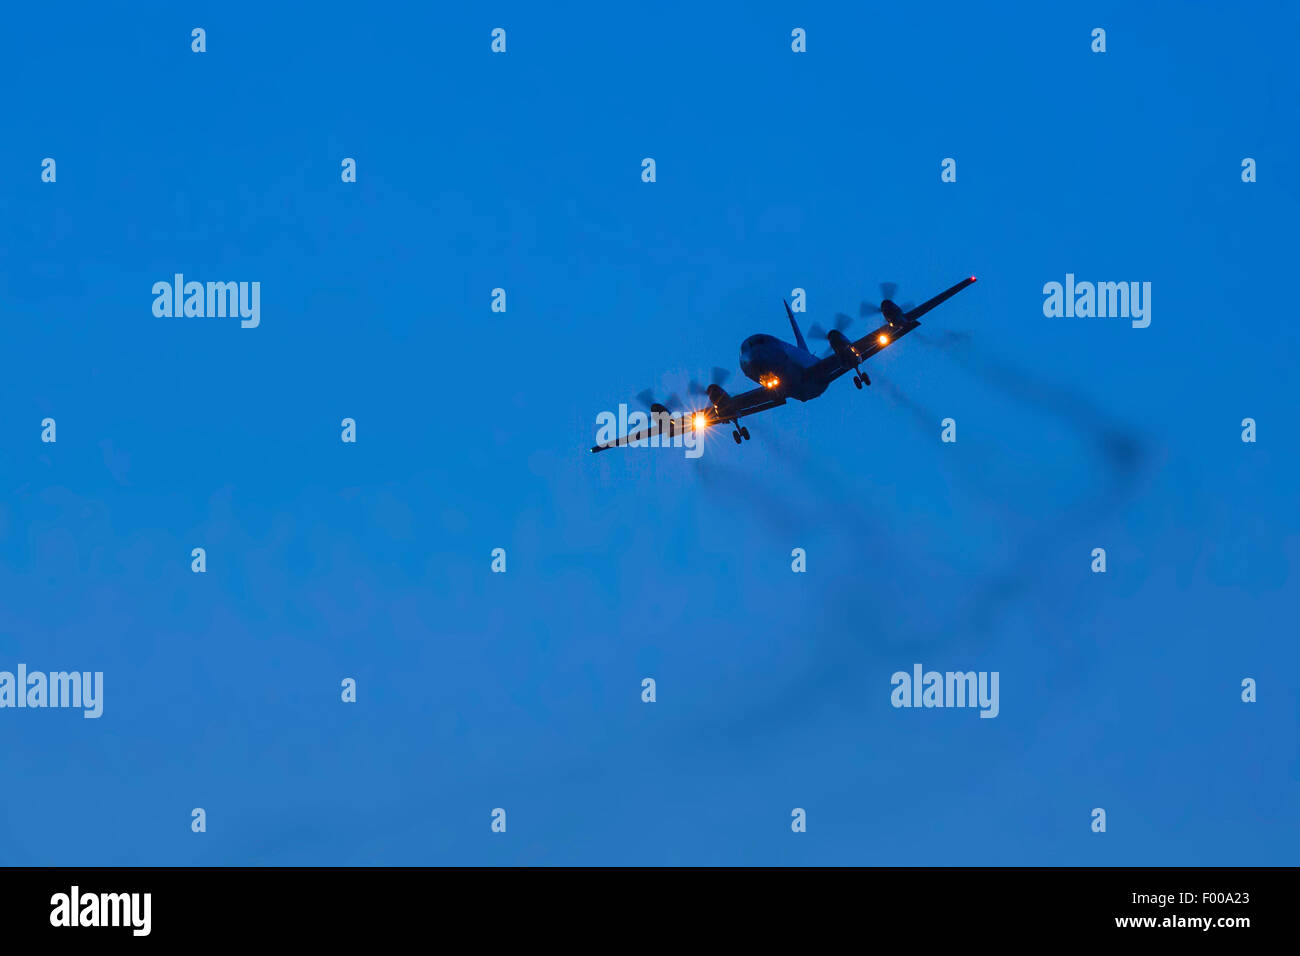 P-3C Orion maritime patrol aircraft, Norway, Vester�len, Insel And�ya - Stock Image